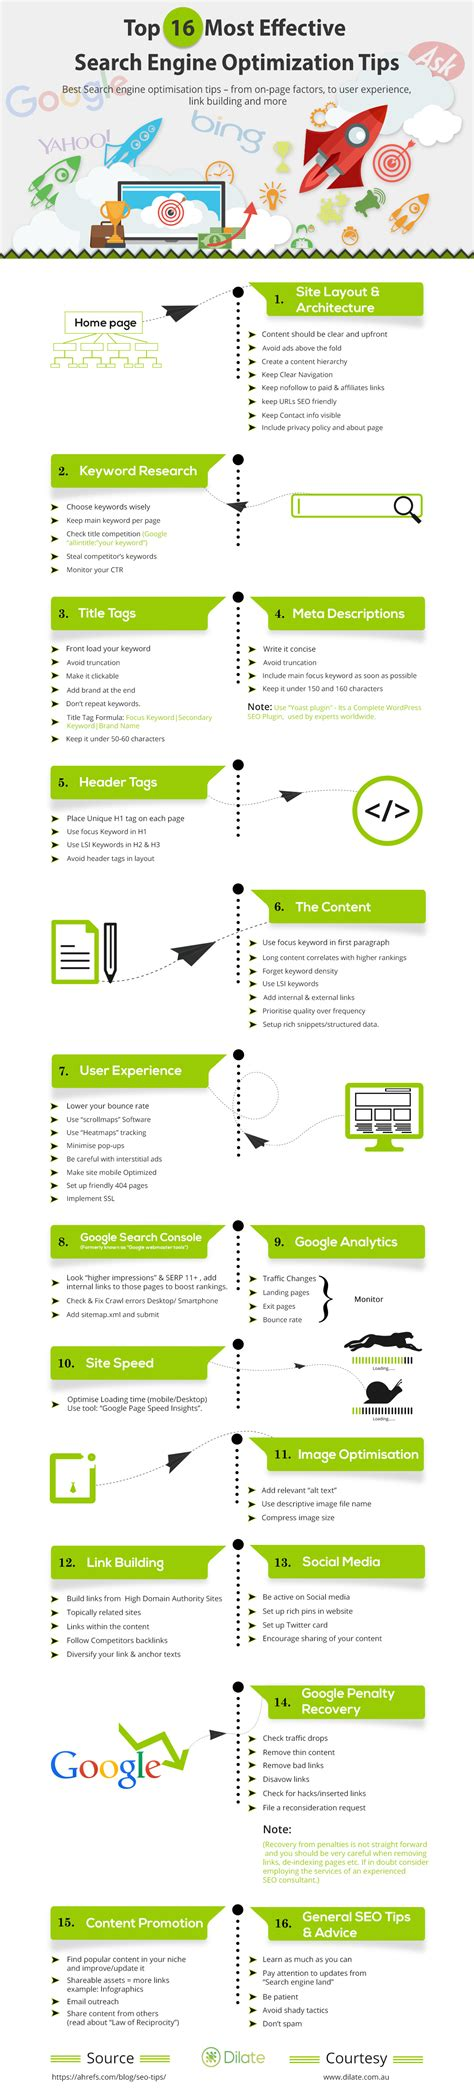 What Search Most On Top 16 Most Effective Search Engine Optimization Tips 2016